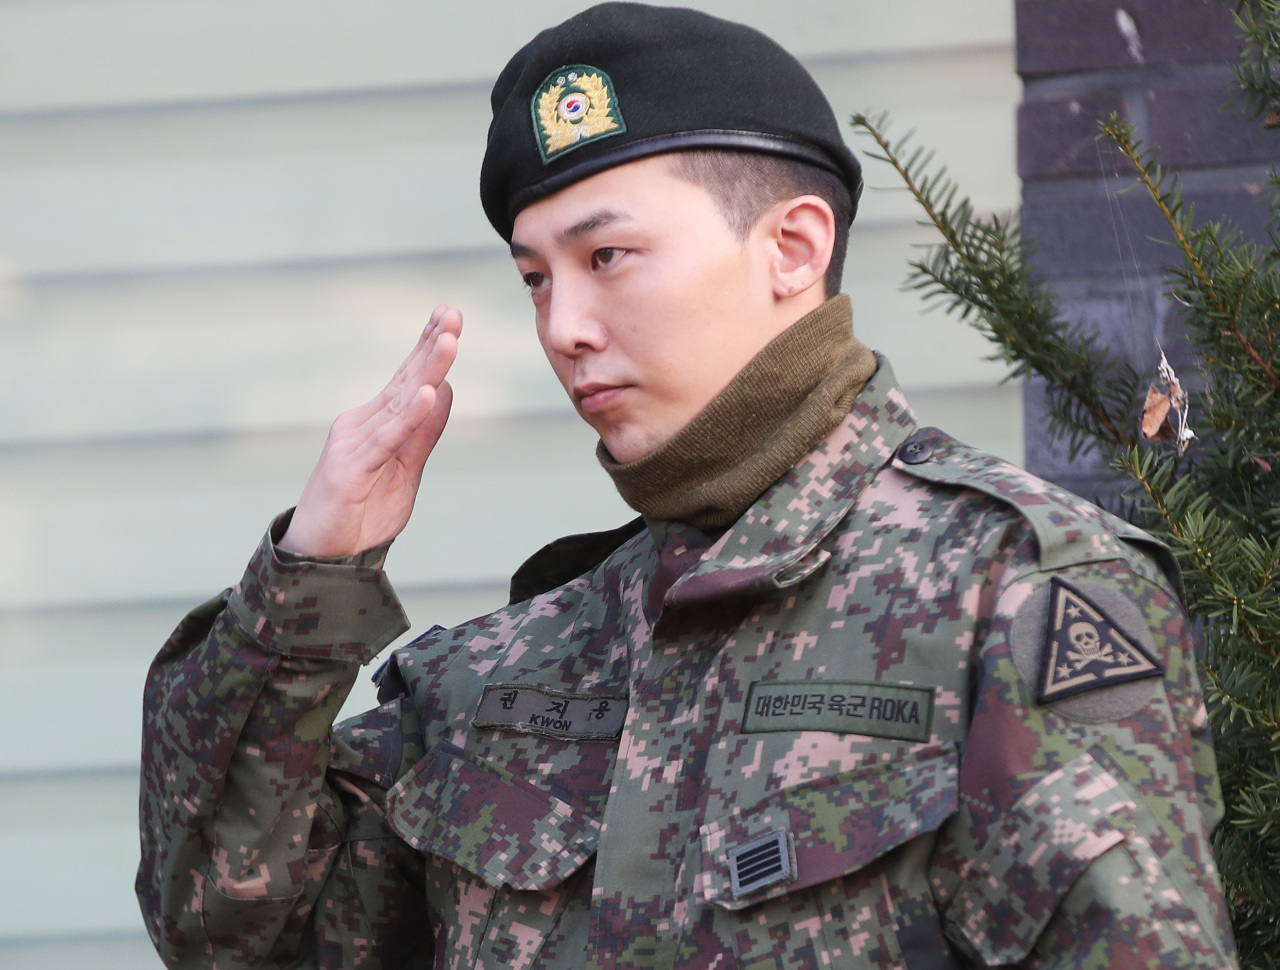 Big Bang's leader G-Dragon was discharged from military in October. (Yonhap)